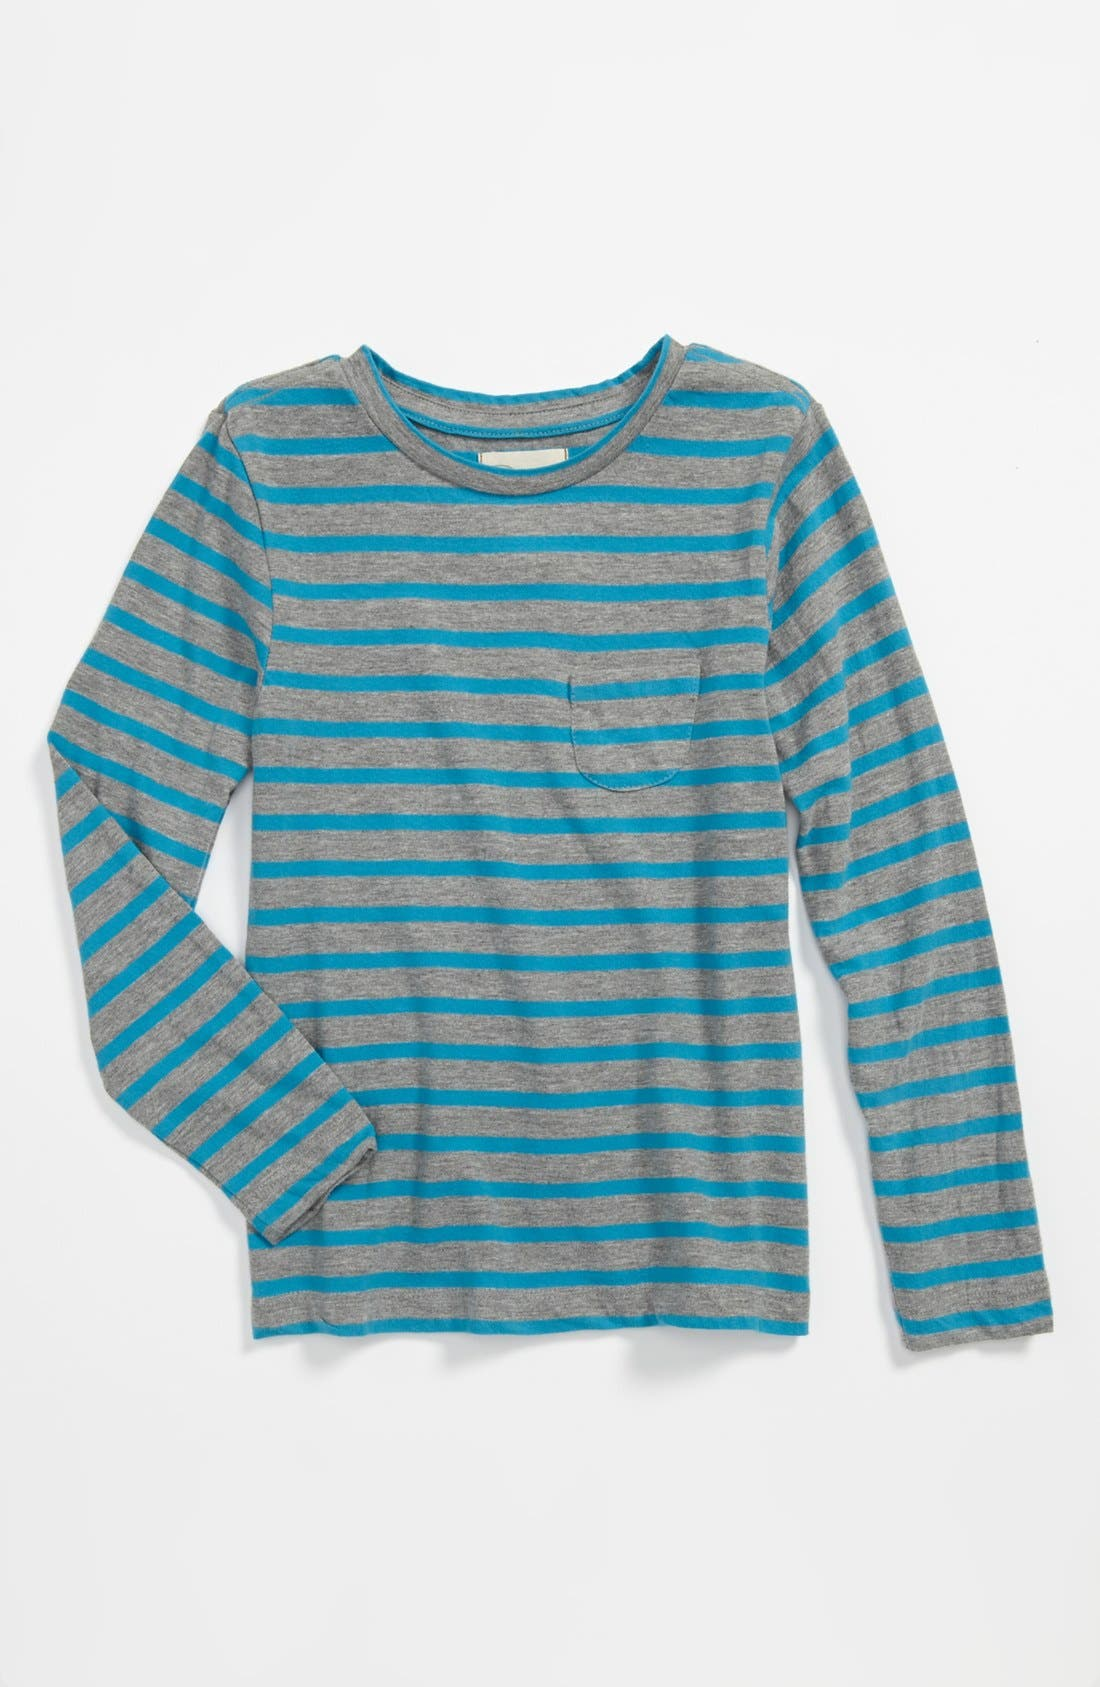 Main Image - Peek 'Myra' Long Sleeve Tee (Toddler Girls, Little Girls & Big Girls)